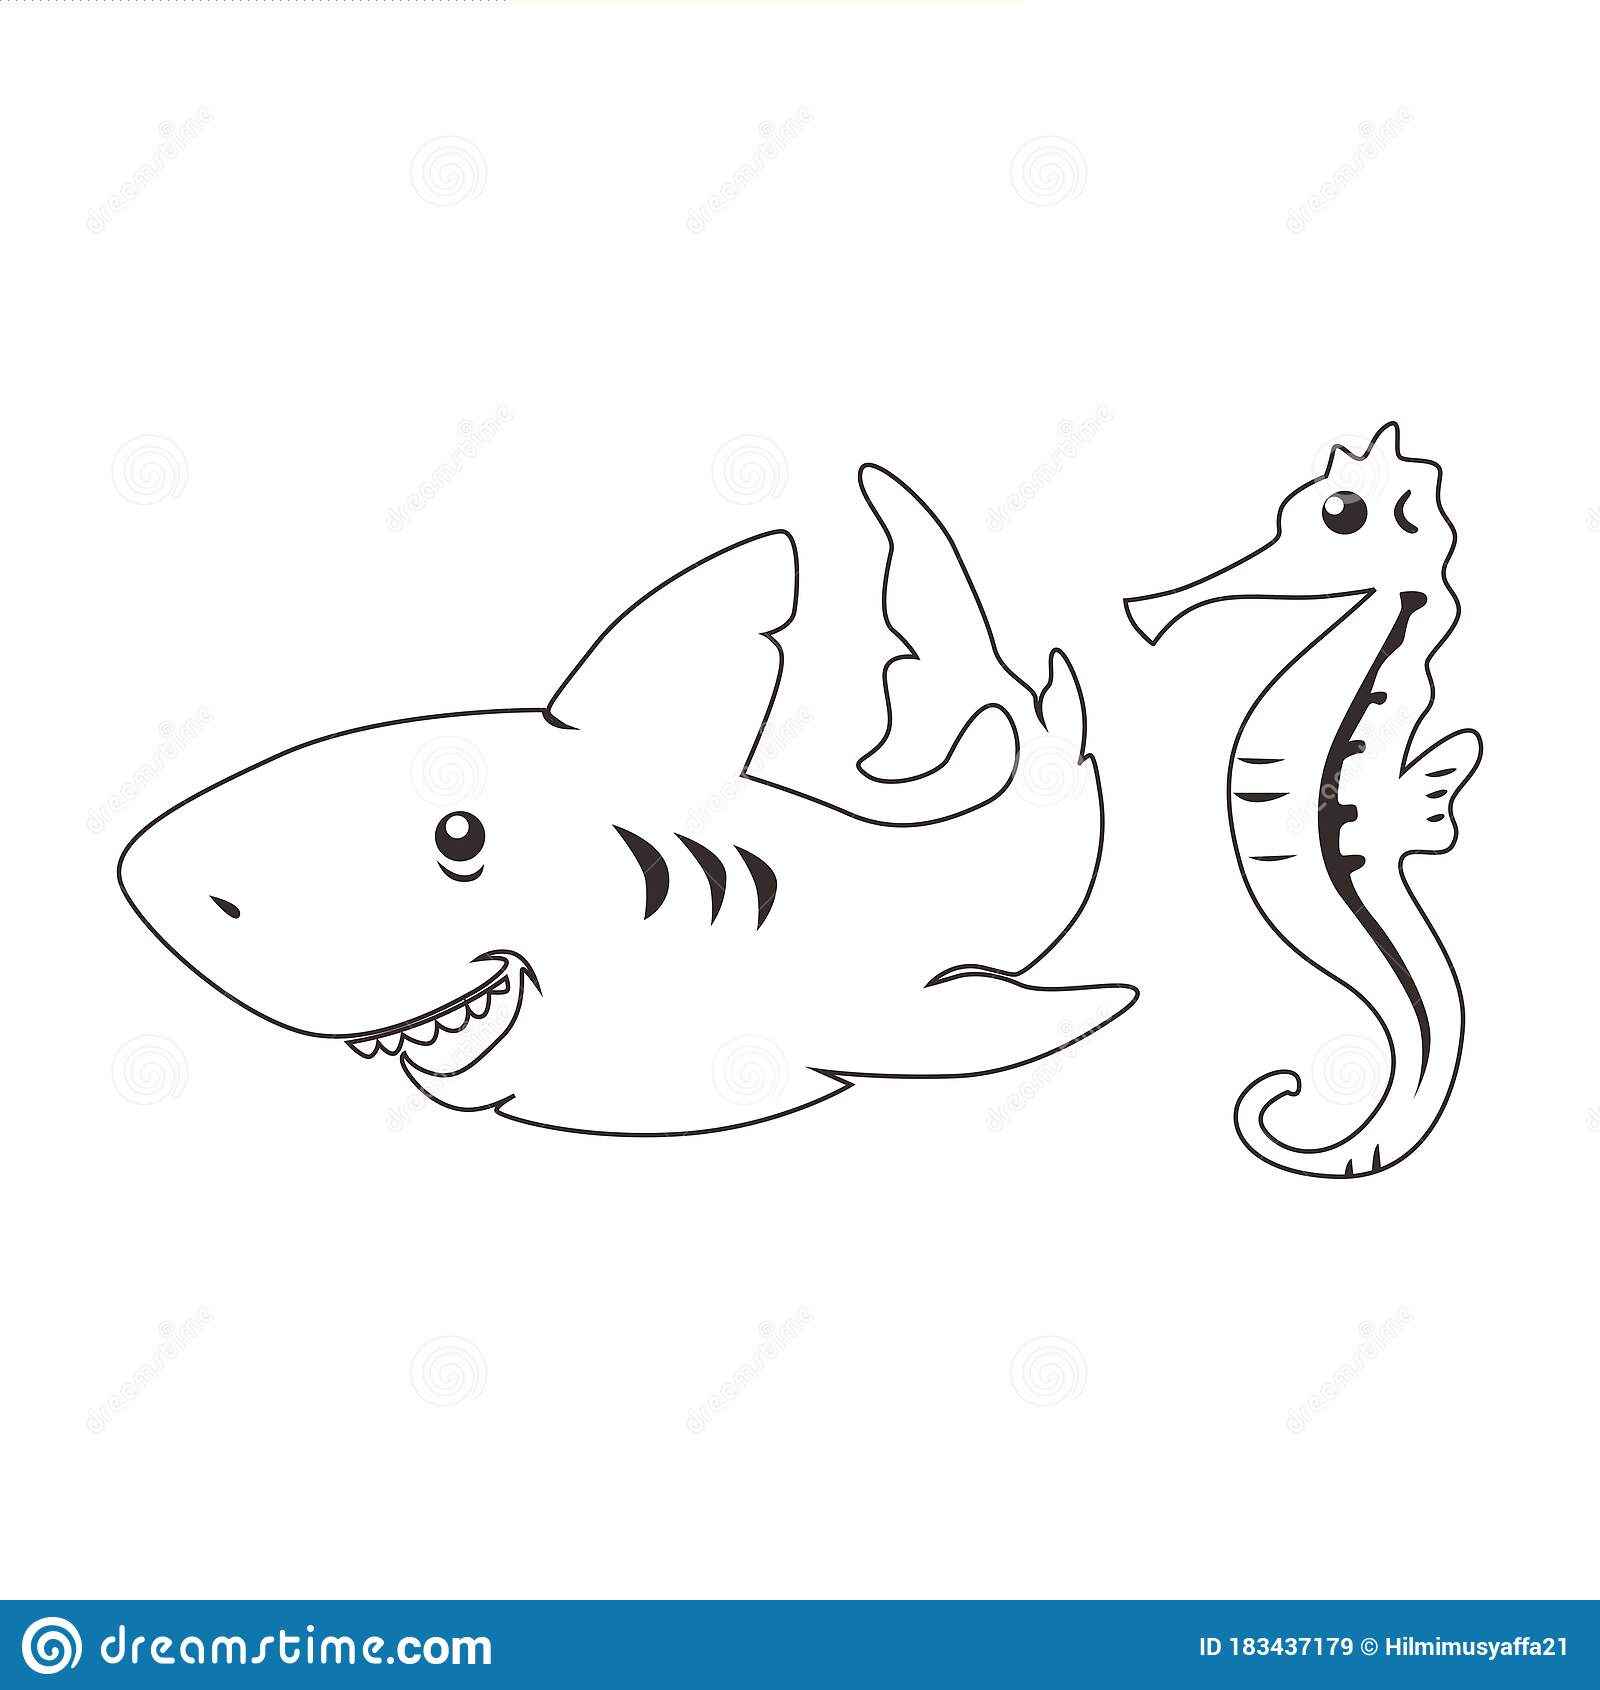 Coloring Book With Marine Animals Sharks And Sea Horse